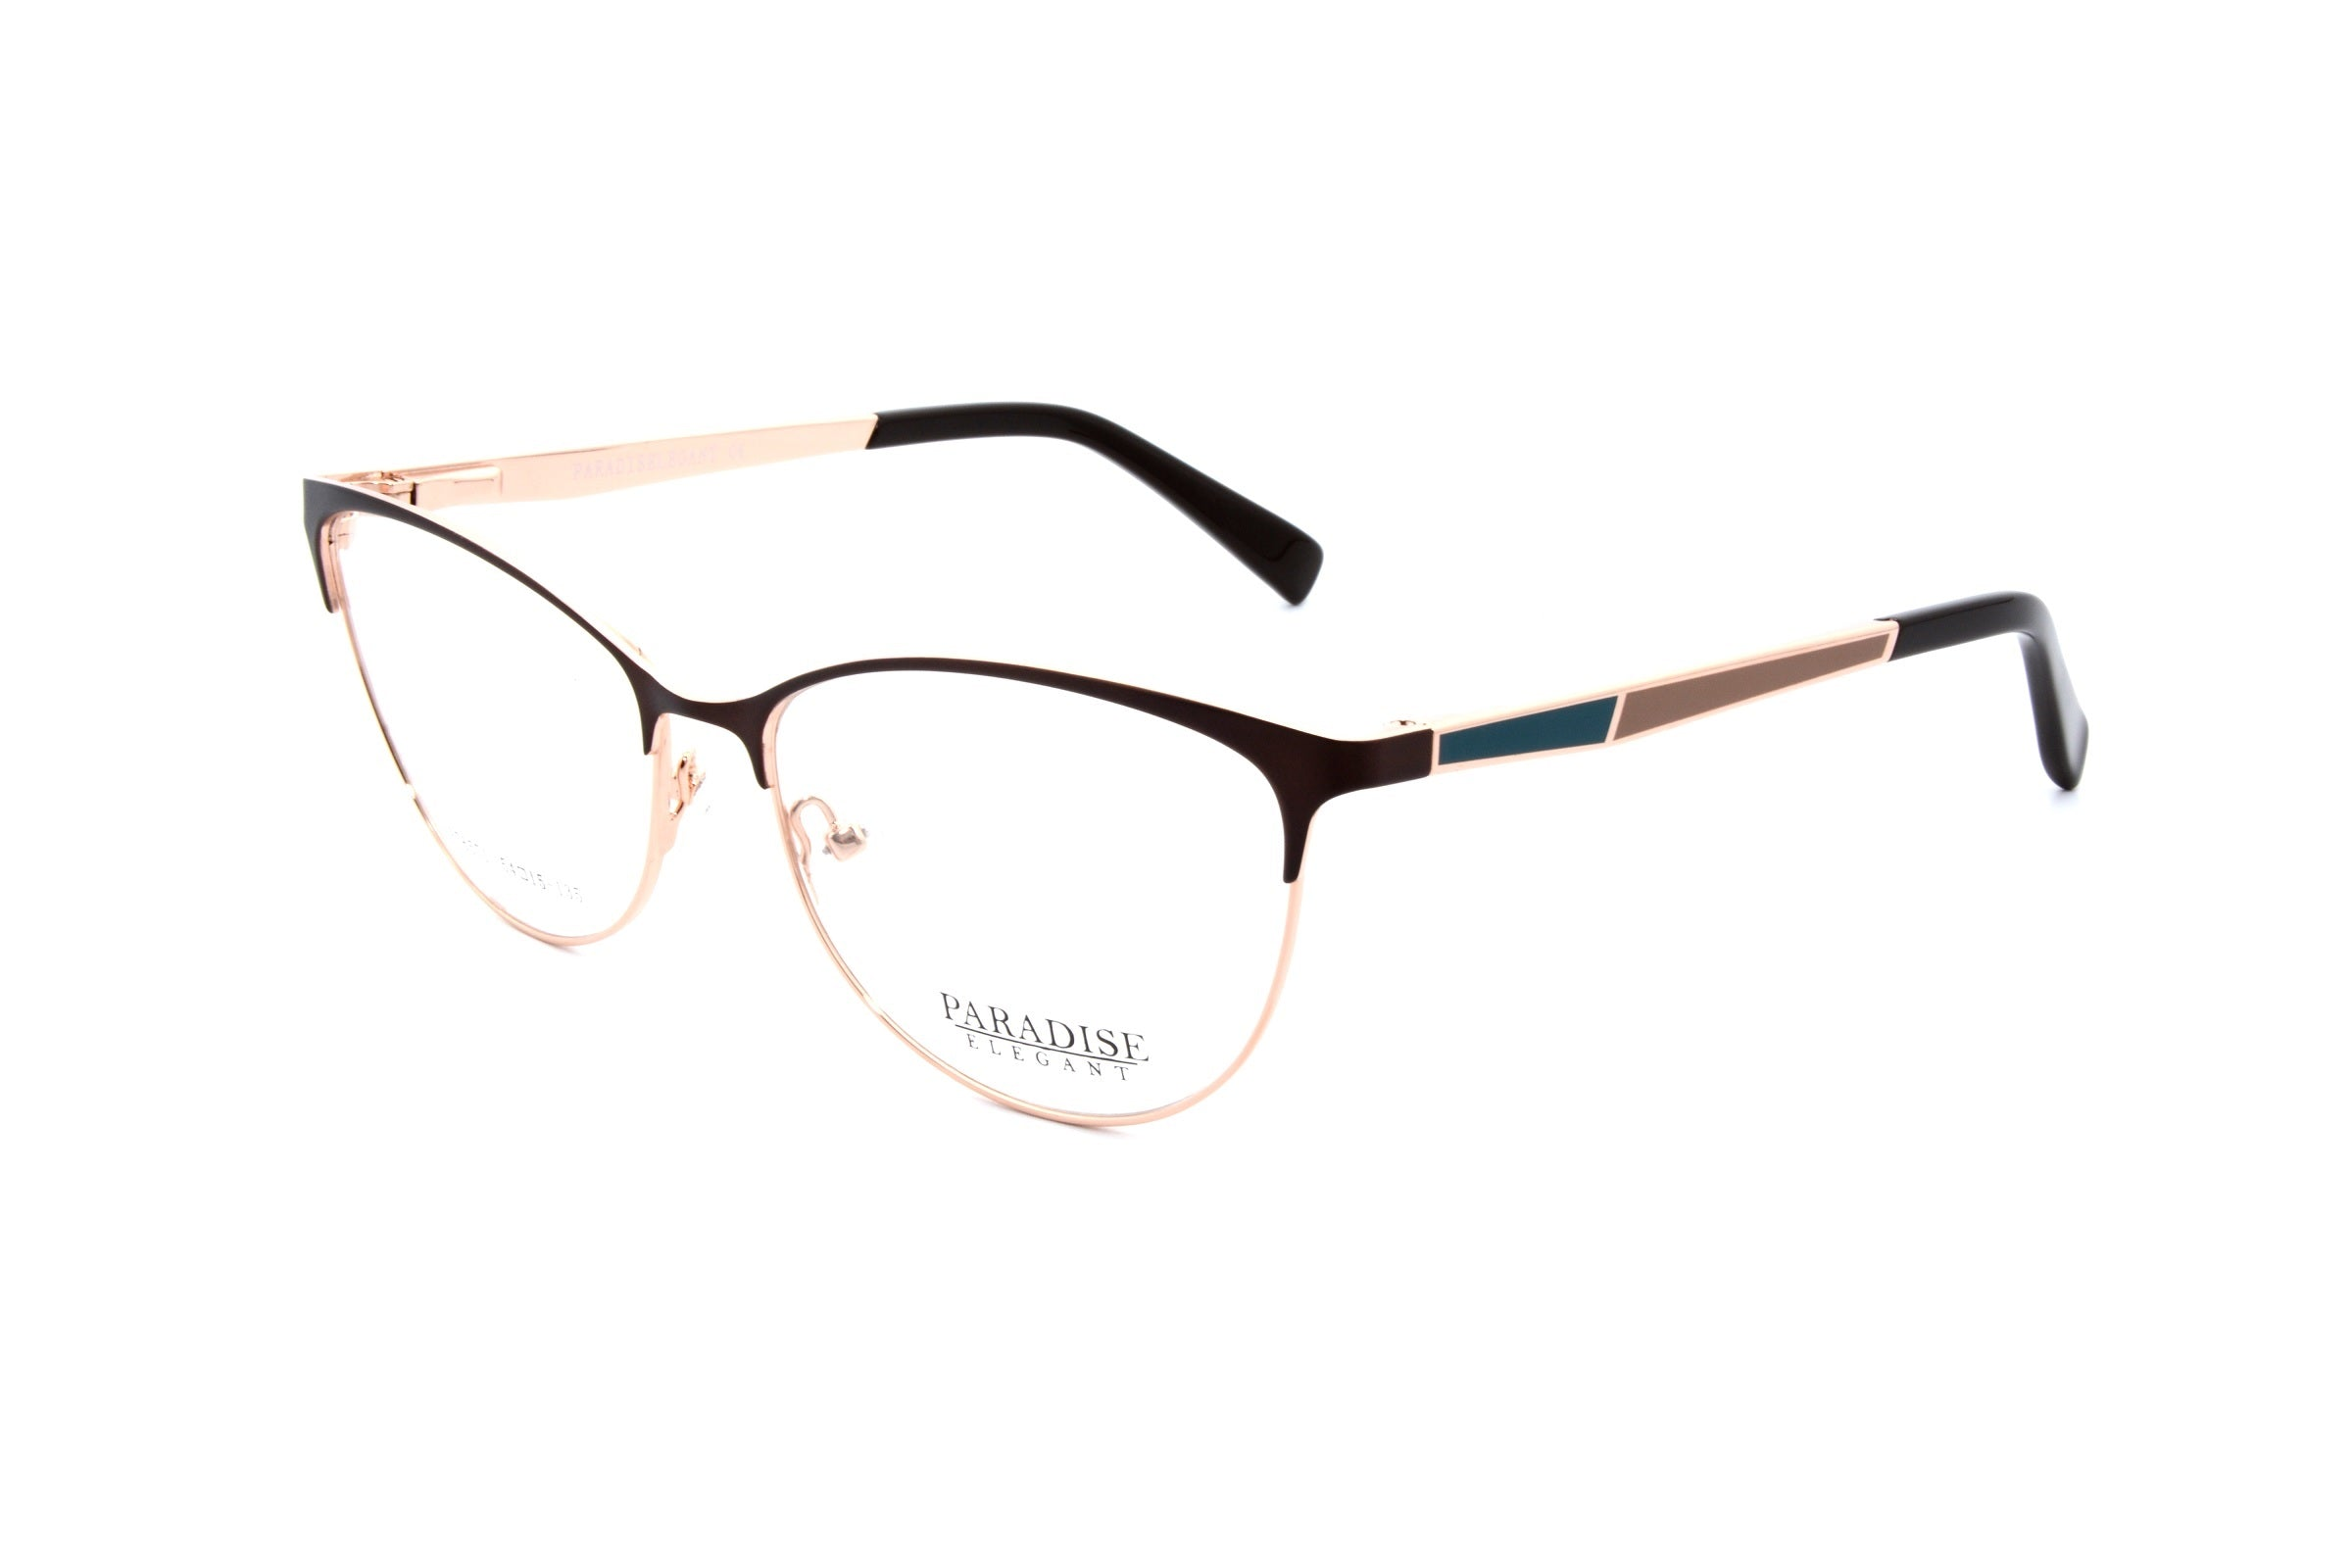 Paradise eyewear 76571, C4 - Optics Trading